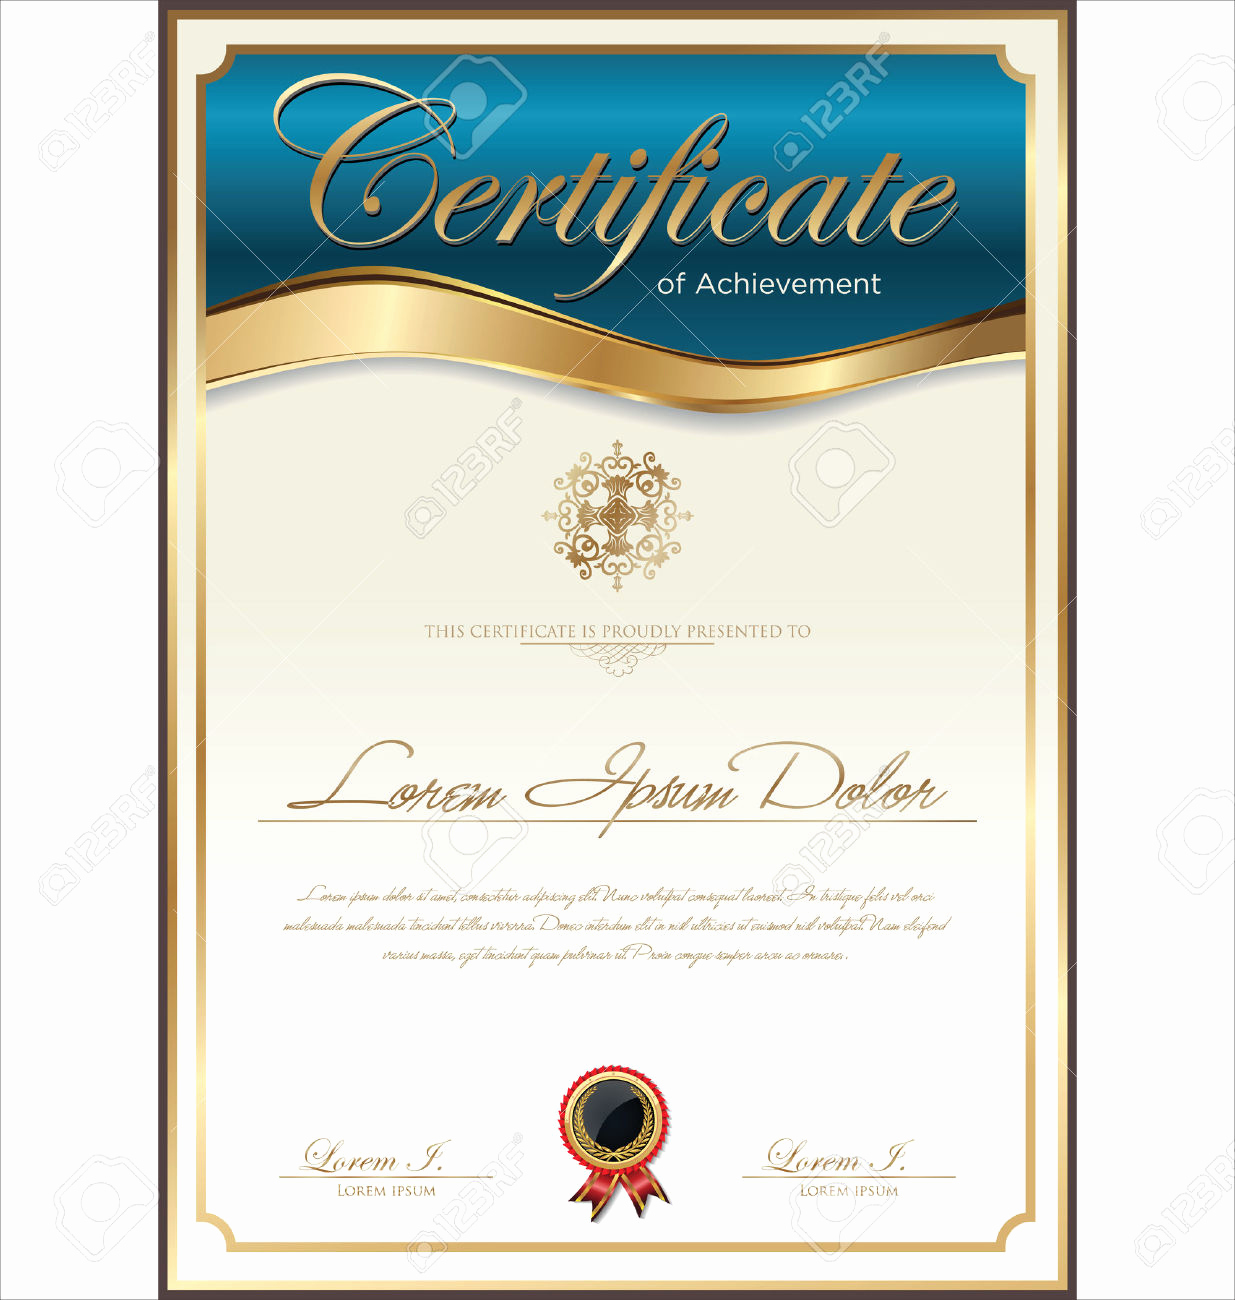 Award Certificate Template Free Fresh Certificate Templates Fotolip Rich Image and Wallpaper